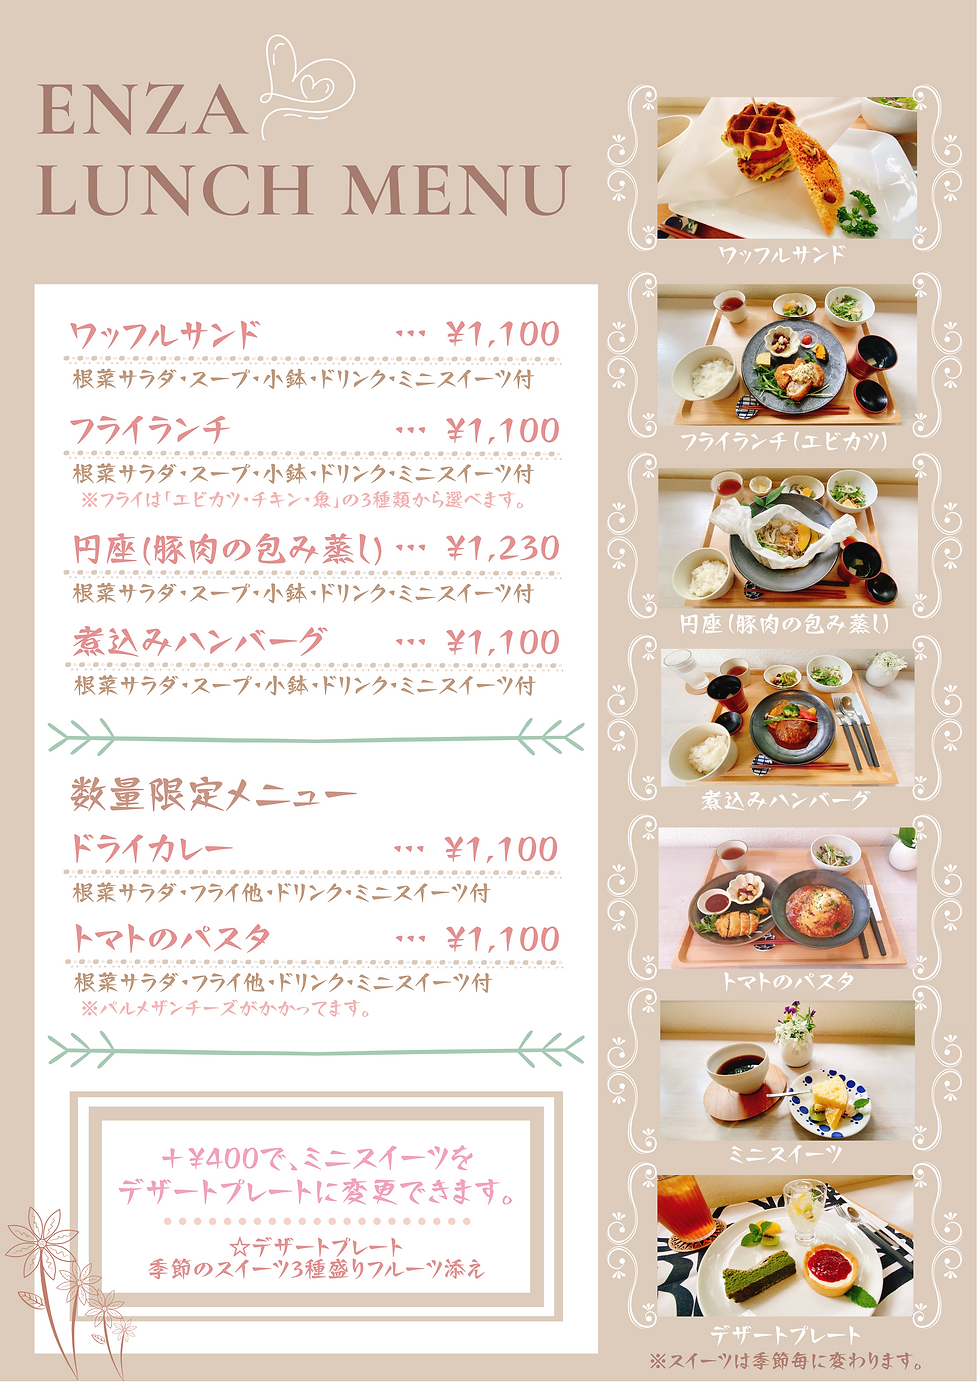 ENZA LUNCH MENU (2).png